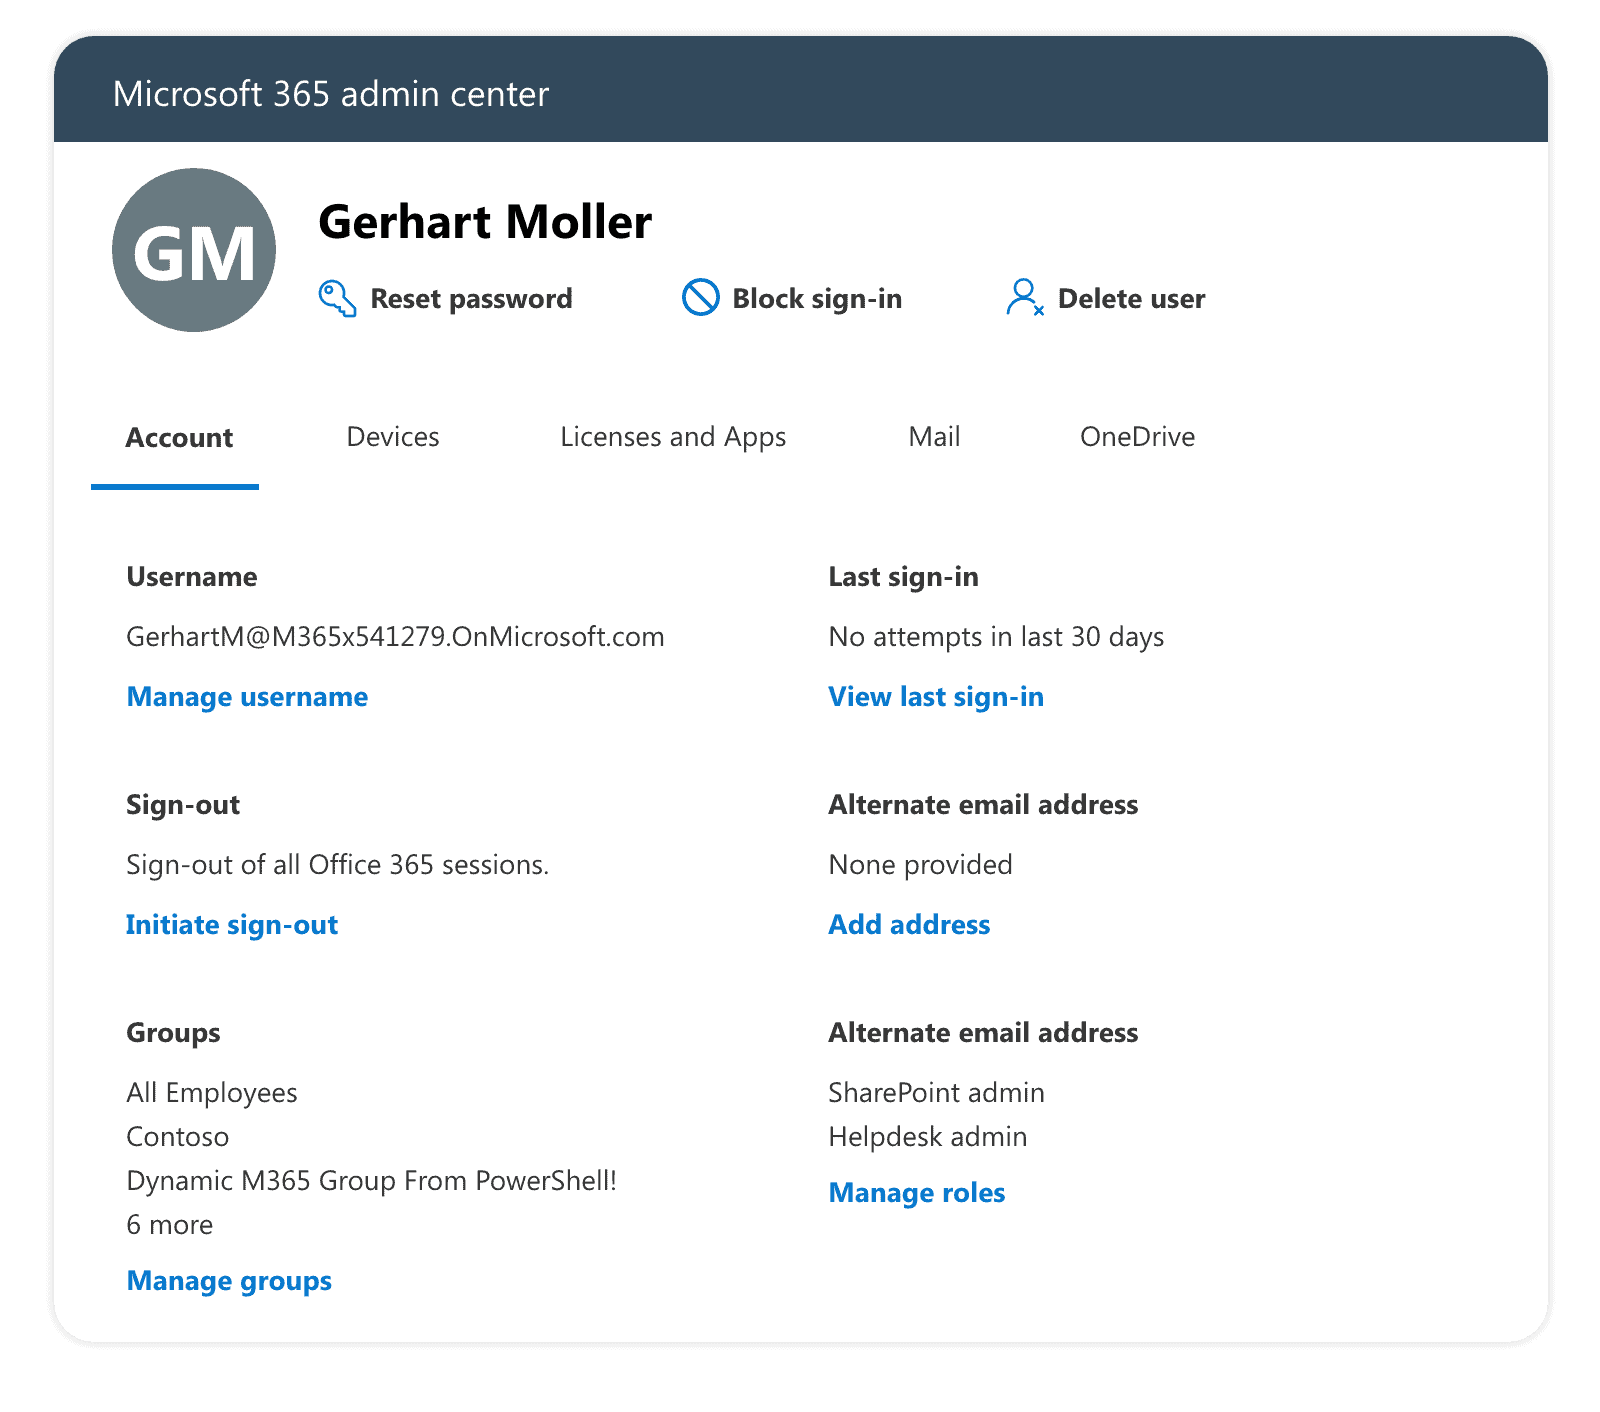 Microsoft 365 admin center user